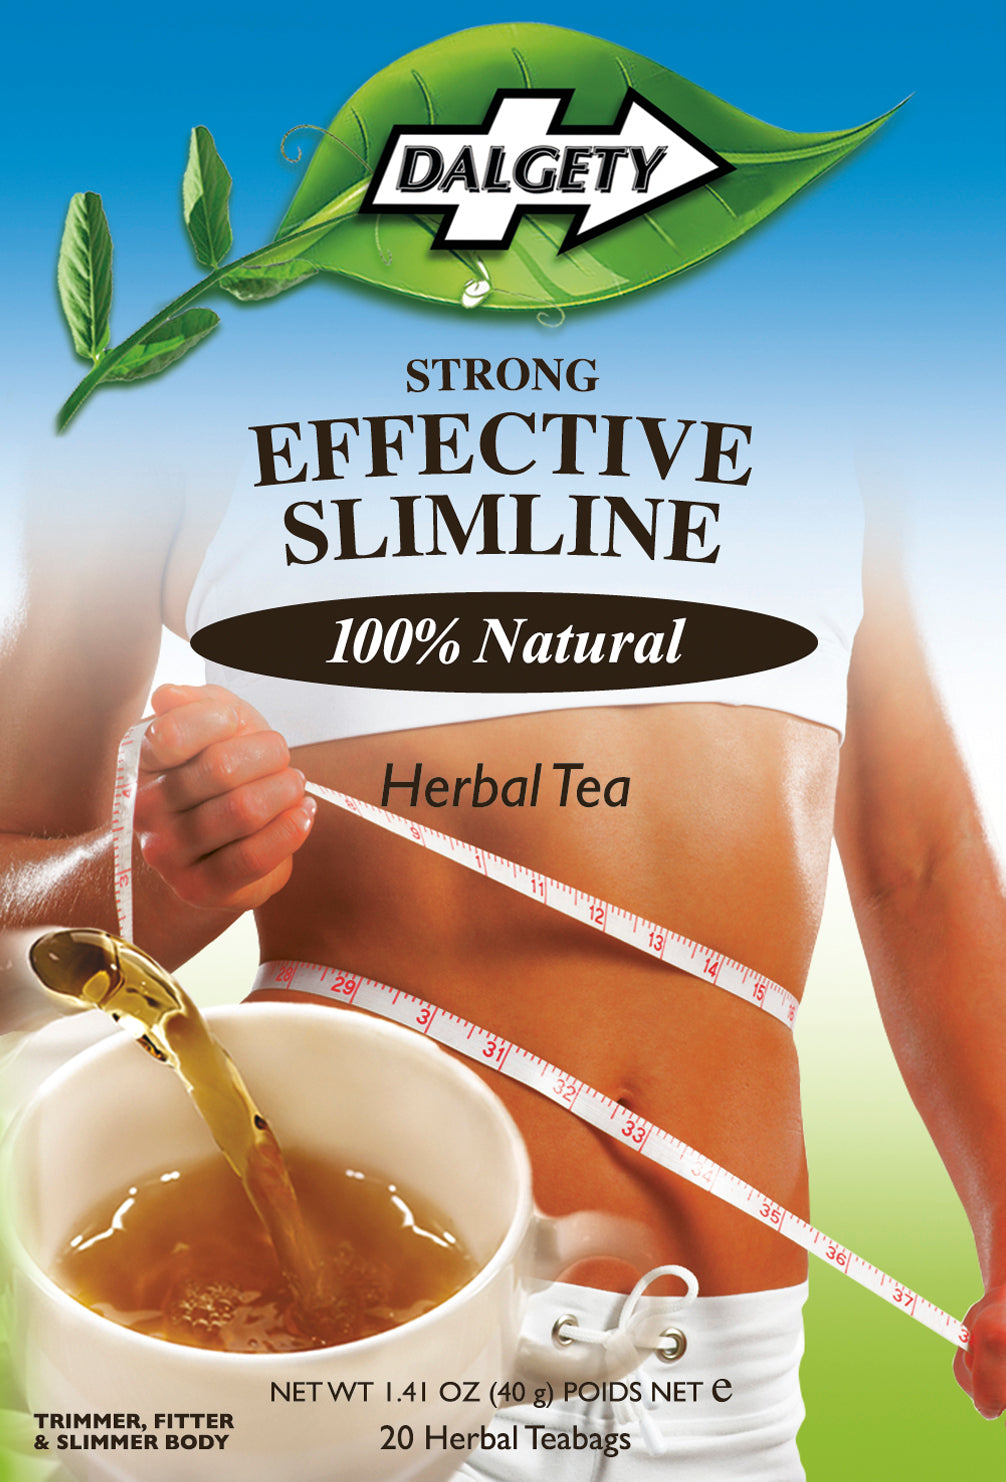 DALGETY EFFECTIVE SLIMLINE HERBAL TEA